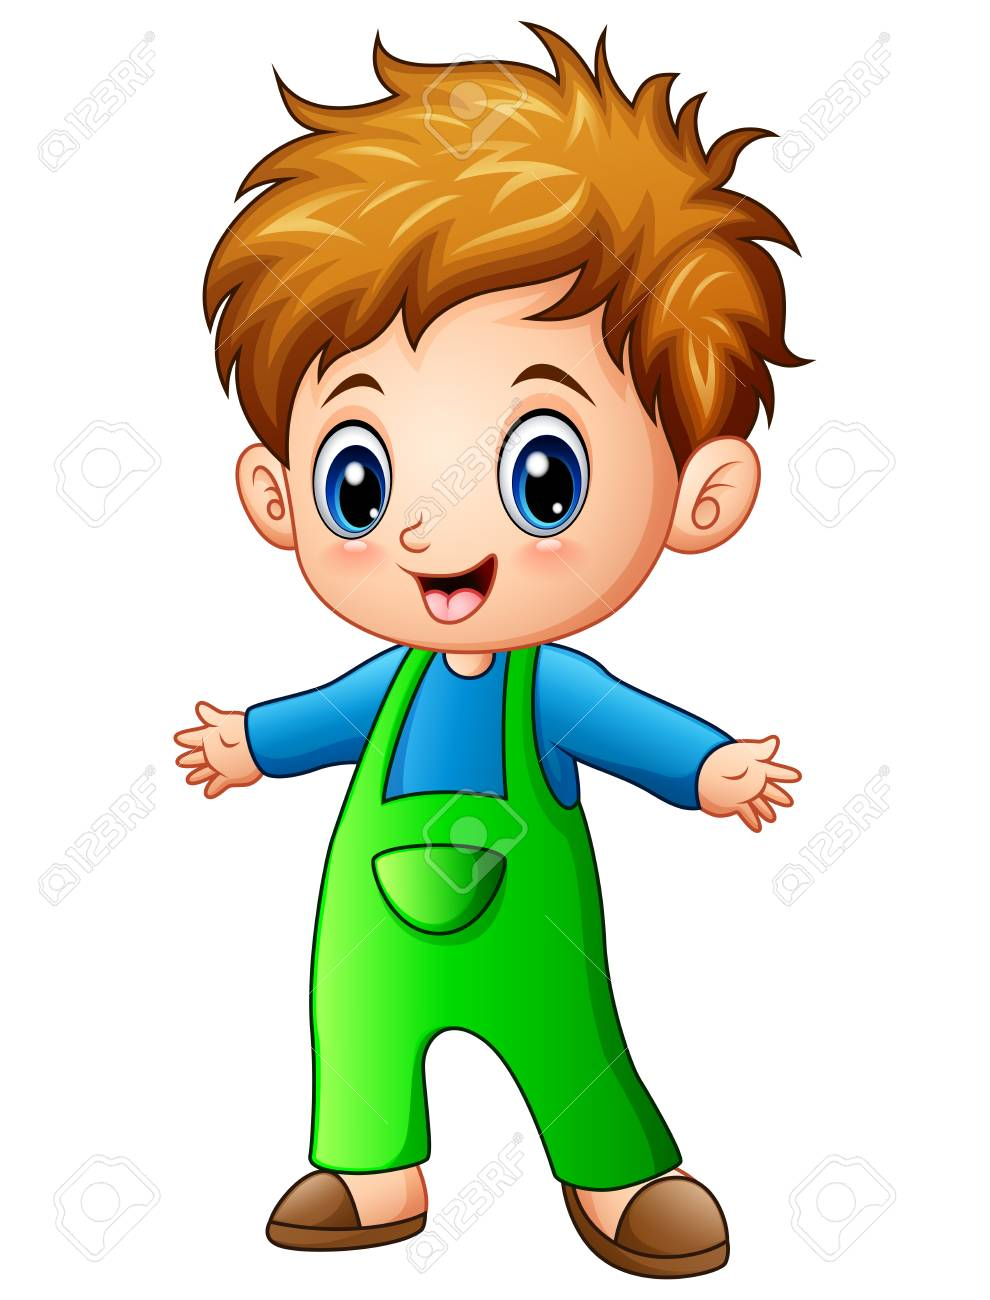 Cute Little Boy Cartoon Stock Photo Picture And Royalty Free Image Image 82718547